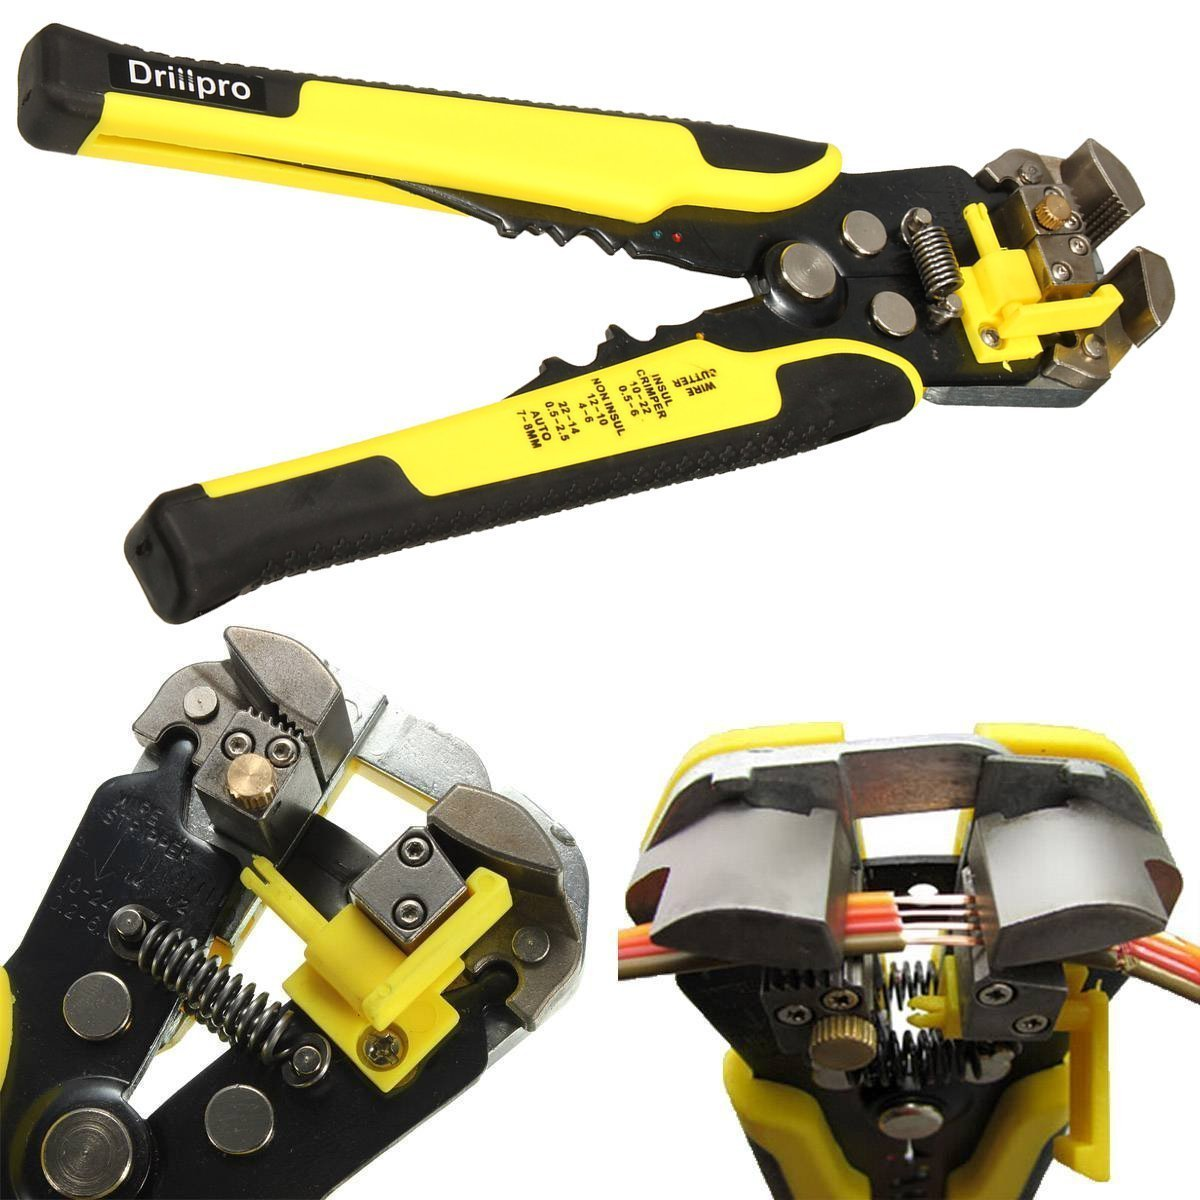 Wire Stripping Tool,Self-Adjusting Professional Multifunctional cable stripper/Crimping Stripping Cutting Pliers /Wire Stripper Plier Tool for Industry 10-24 AWG Stranded Wire Cutting by Drillpro by DRILLPRO (Image #1)